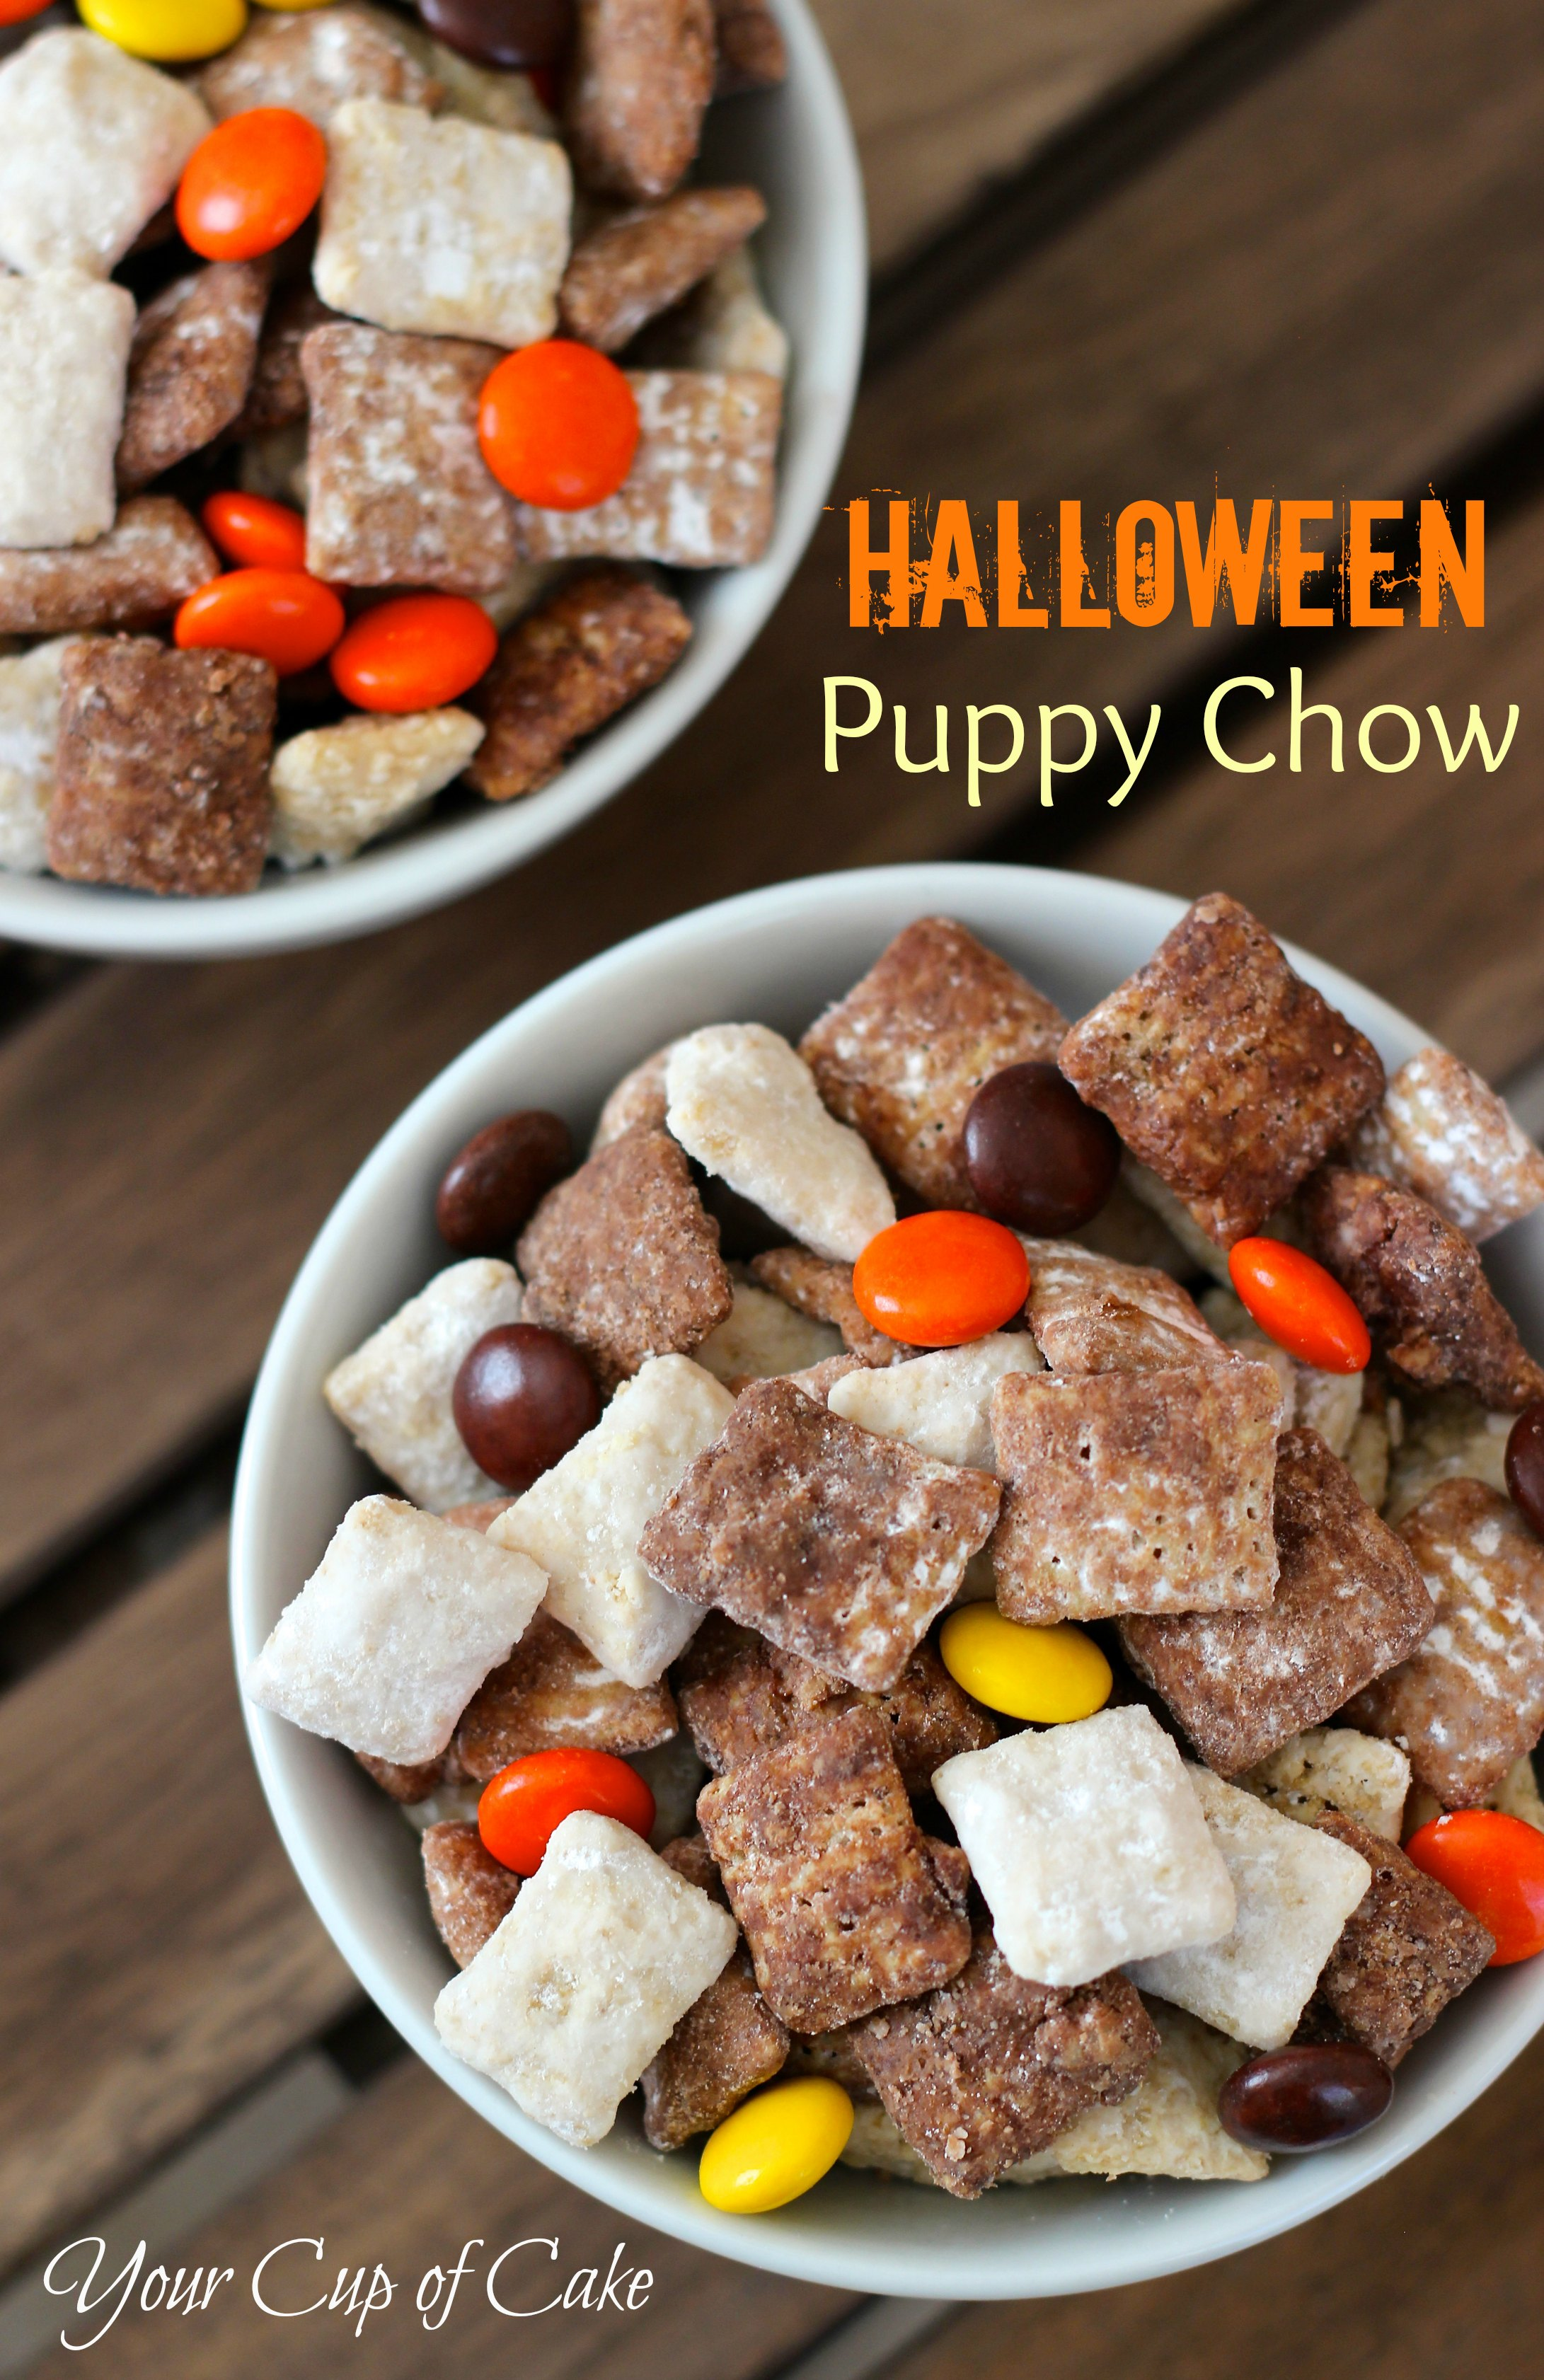 Halloween Puppy Chow Your Cup Of Cake